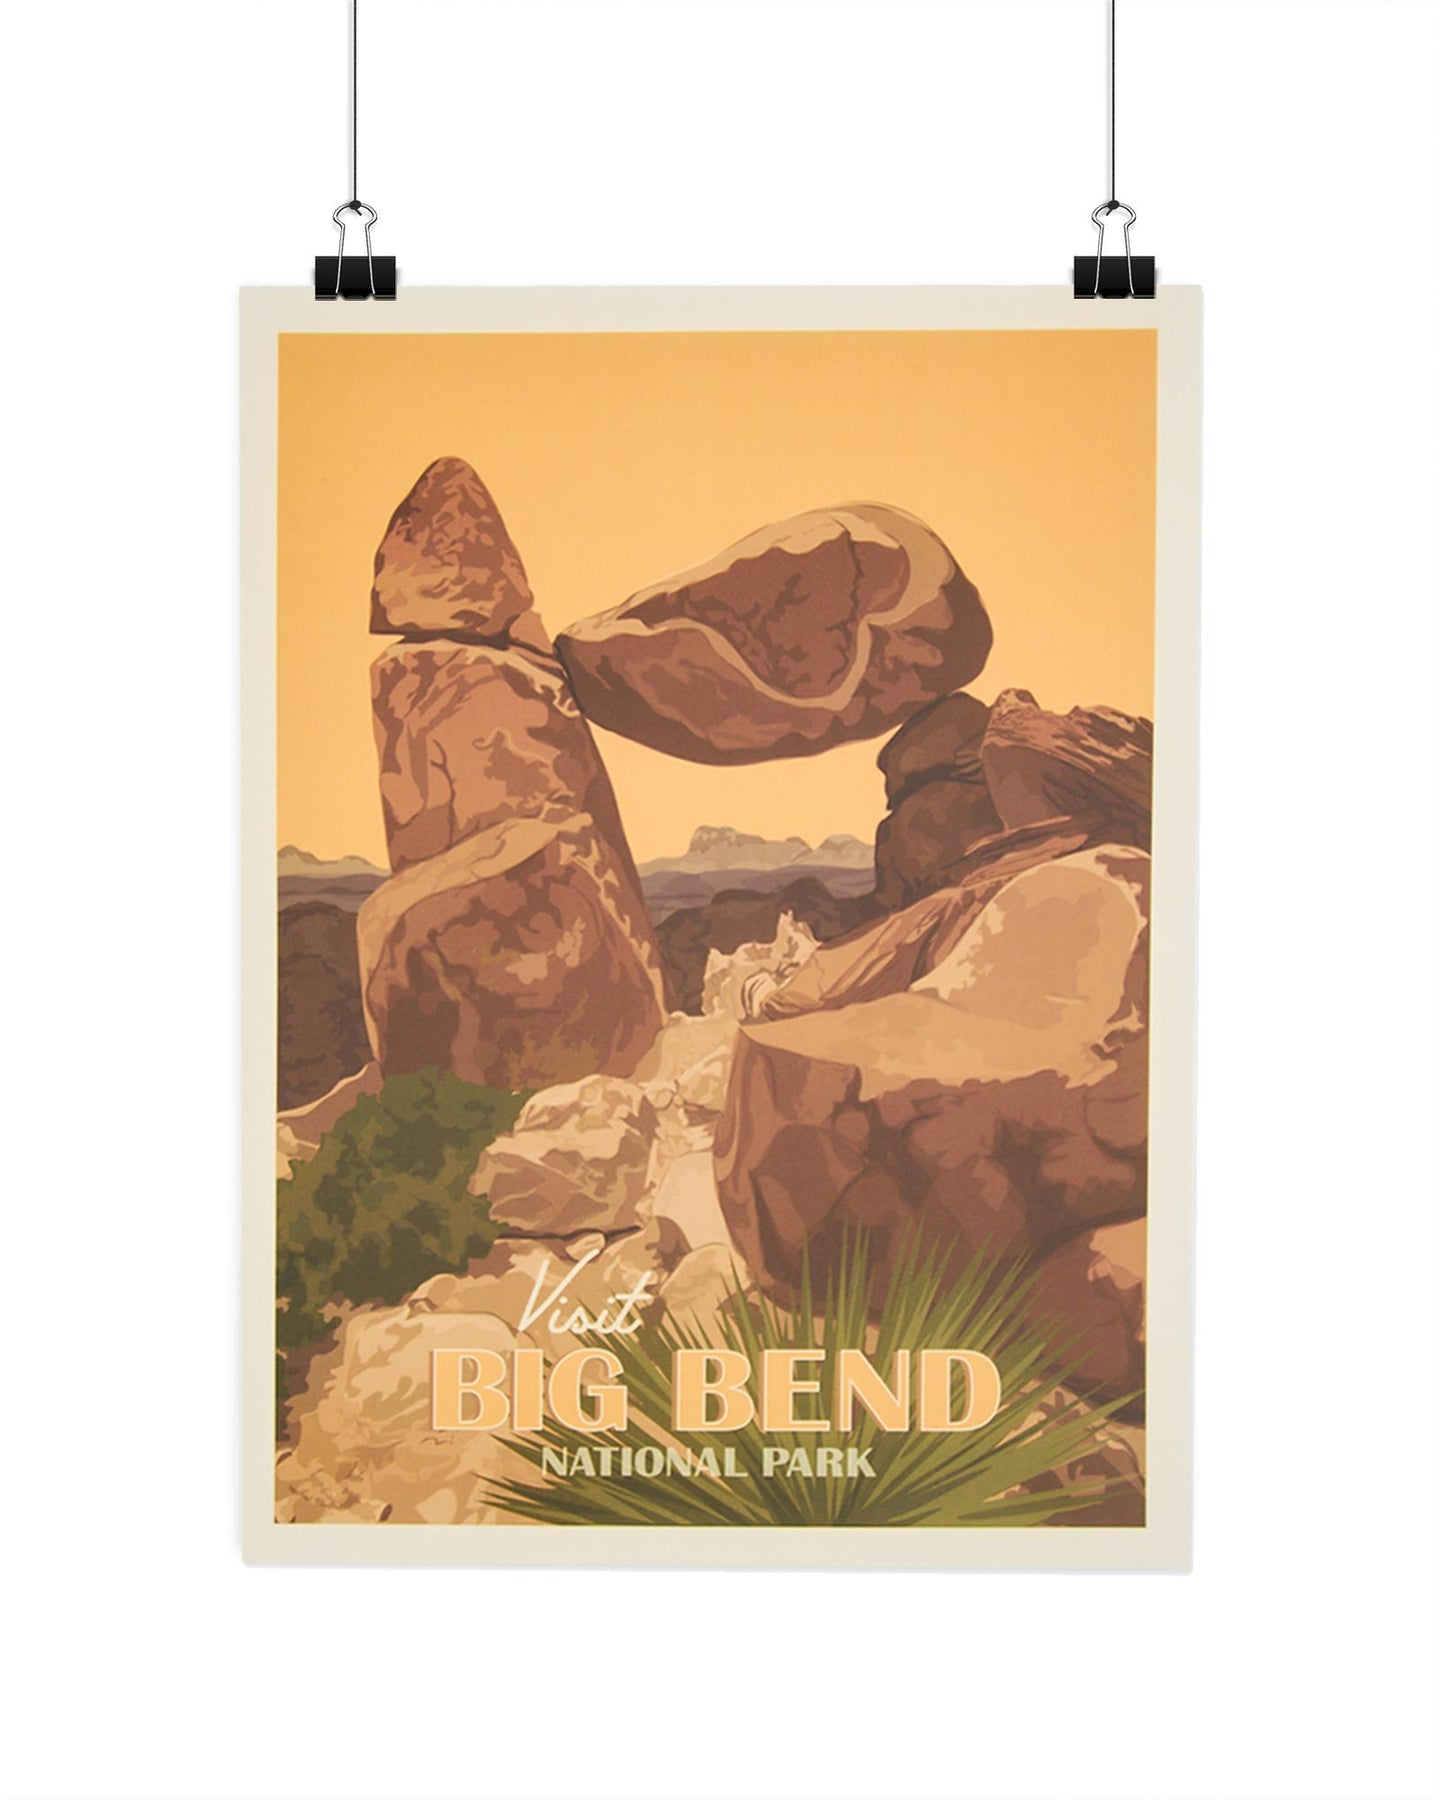 Visit Big Bend National Park Poster AXSPP040